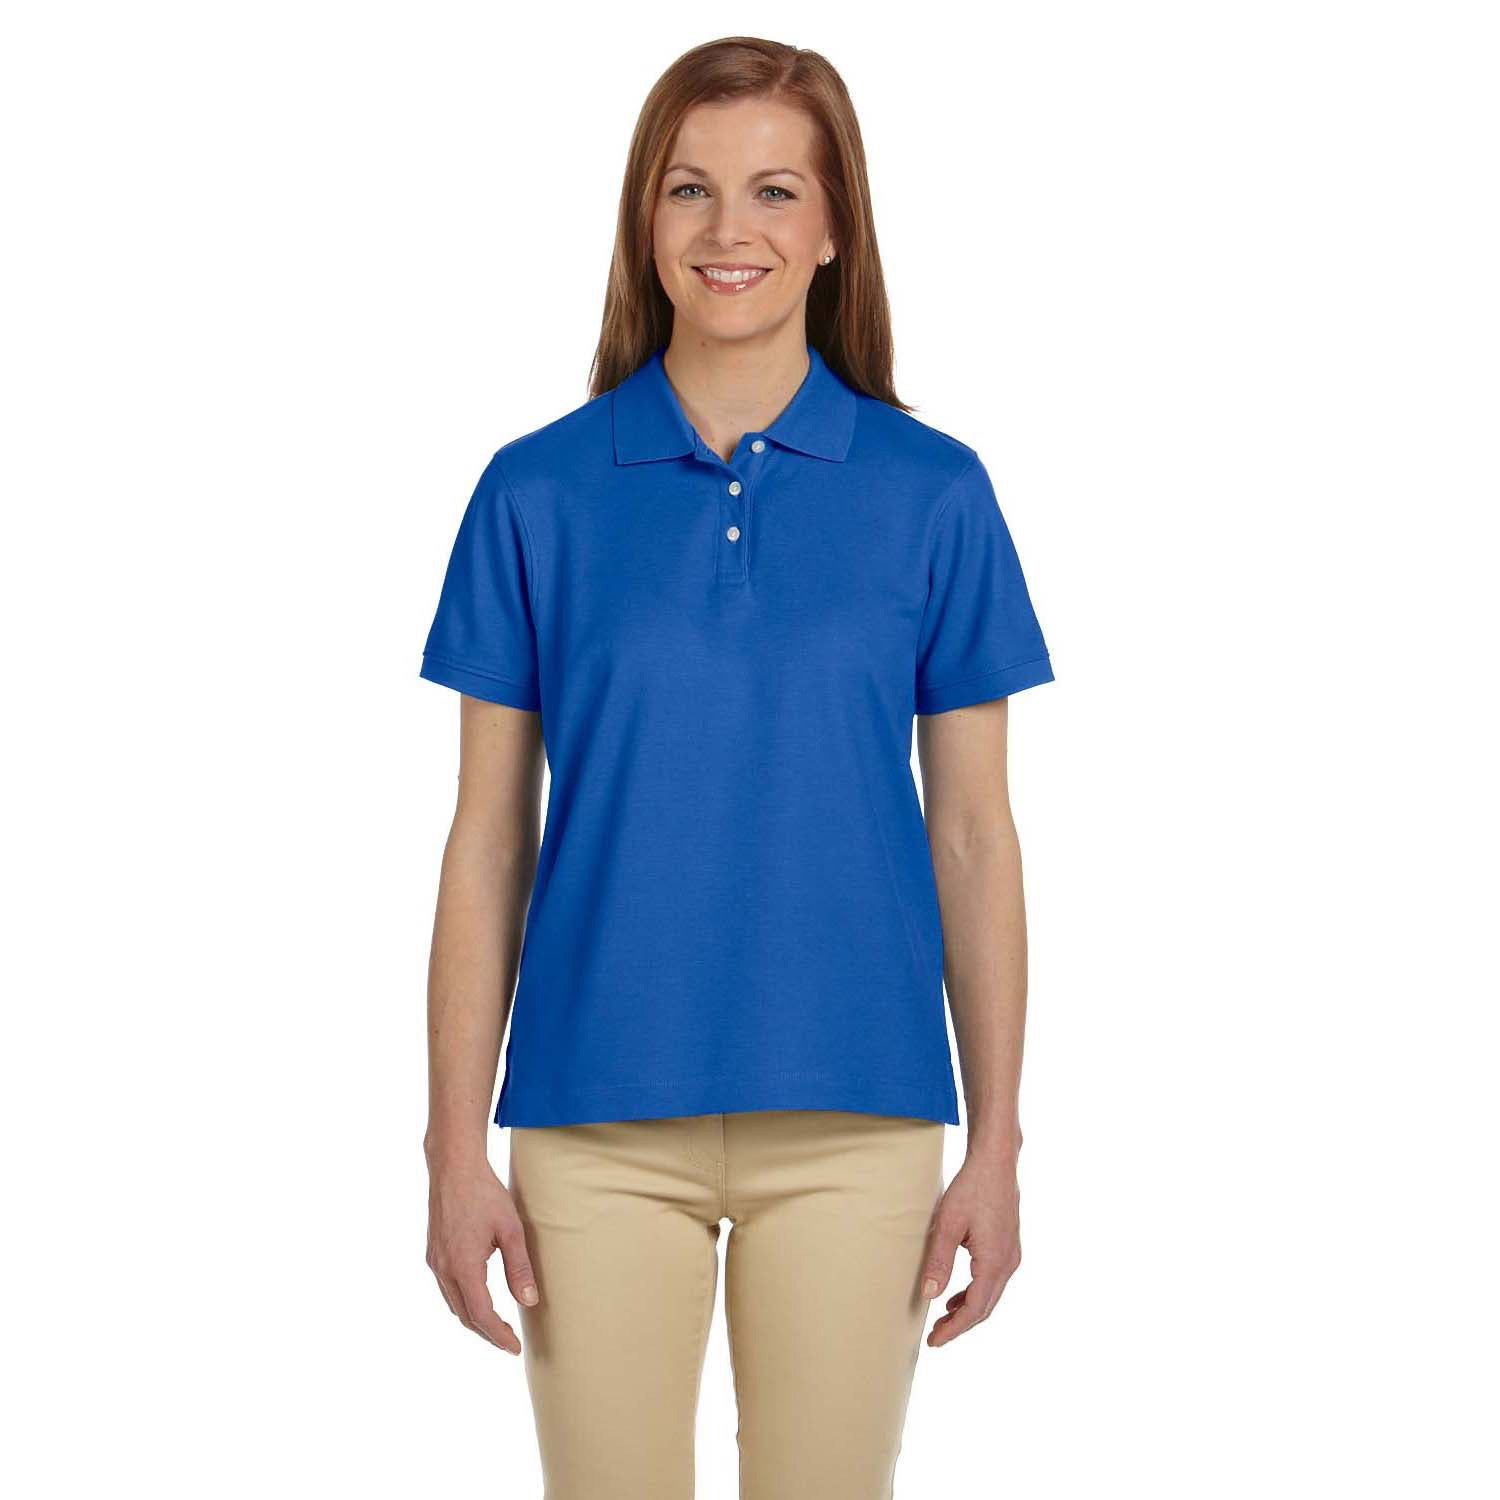 4406df2d Shop Women's Pima Pique Short Sleeve Polo Shirt - On Sale - Free Shipping  On Orders Over $45 - Overstock - 9031438